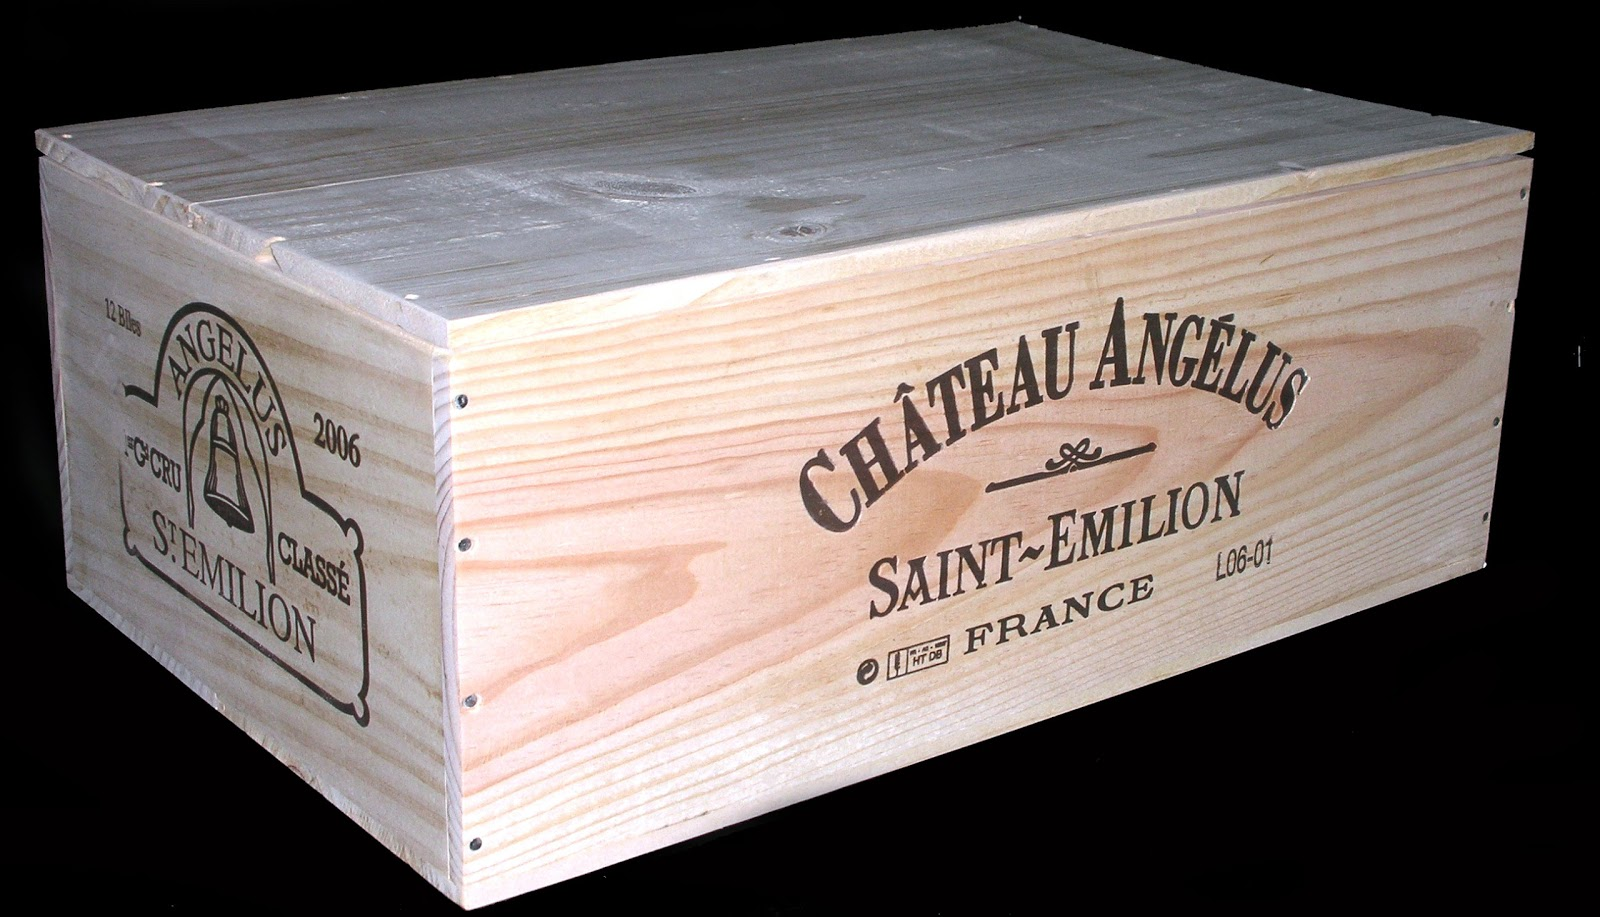 Wooden Wine Boxes & Wine Crates: February 2013